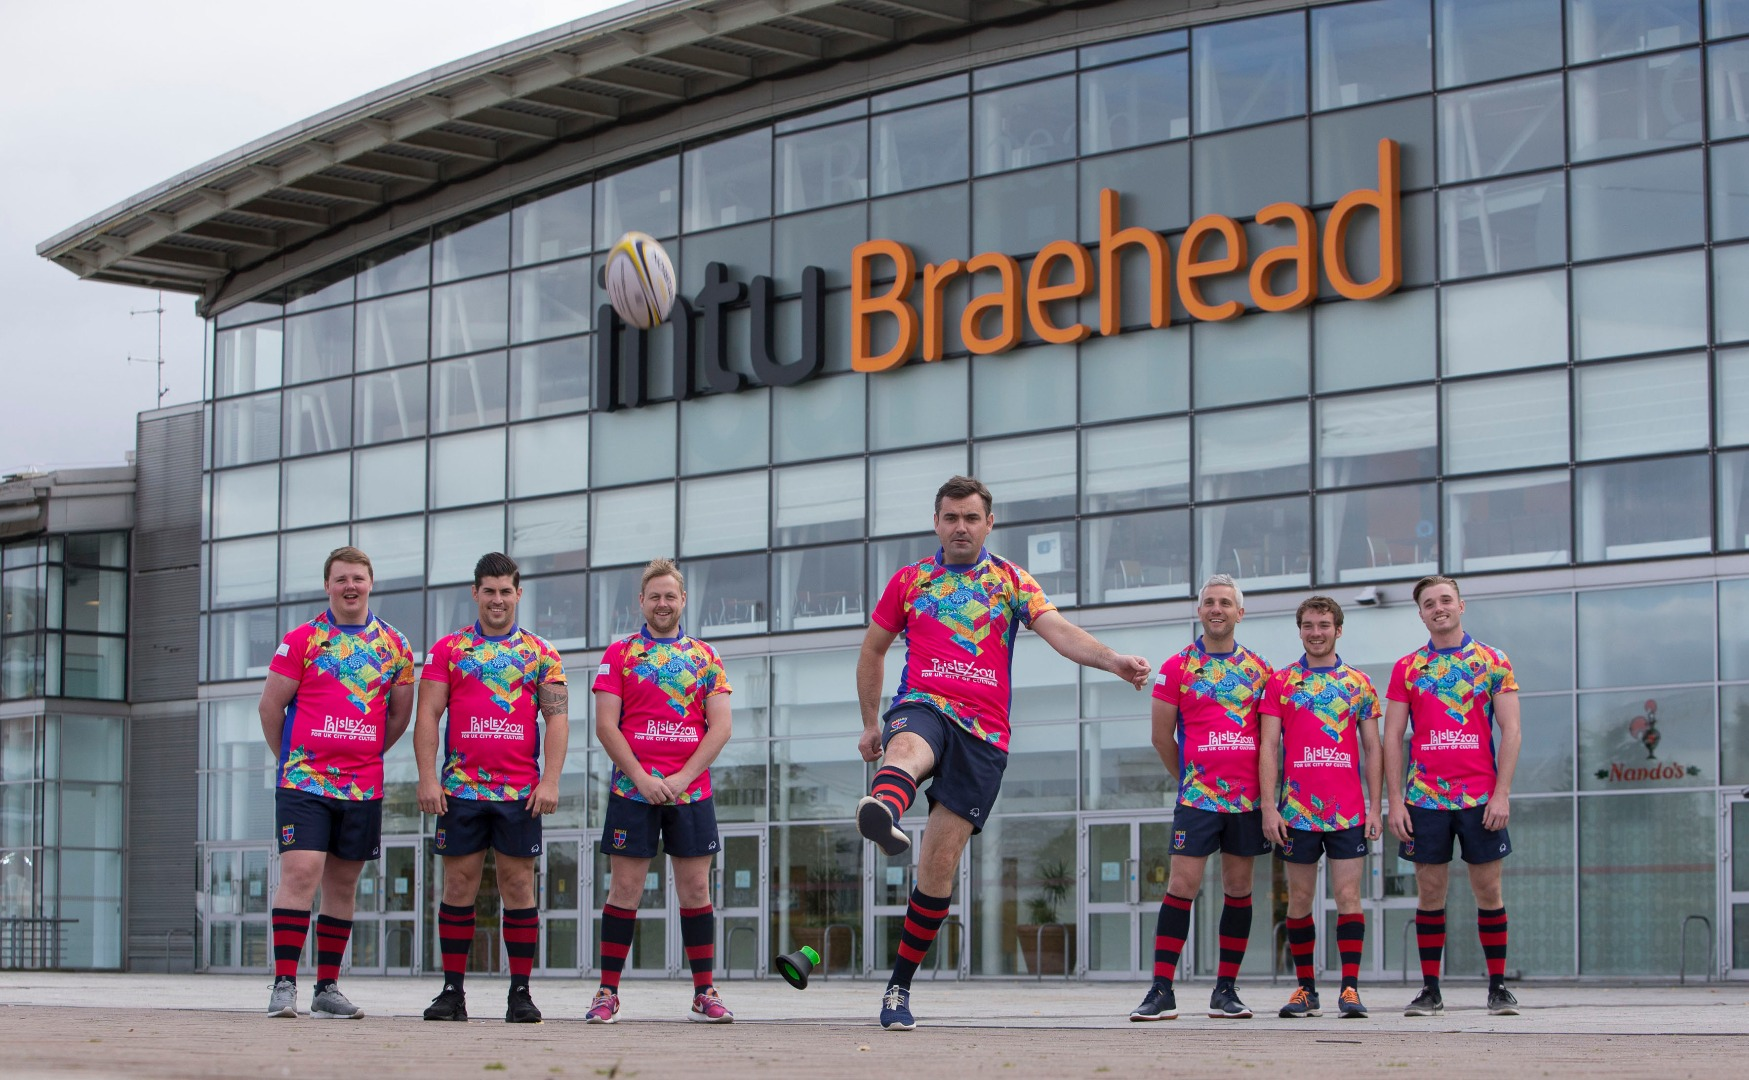 Paisley Rugby Club unveil special Paisley 2021 strips in support of Culture Bid